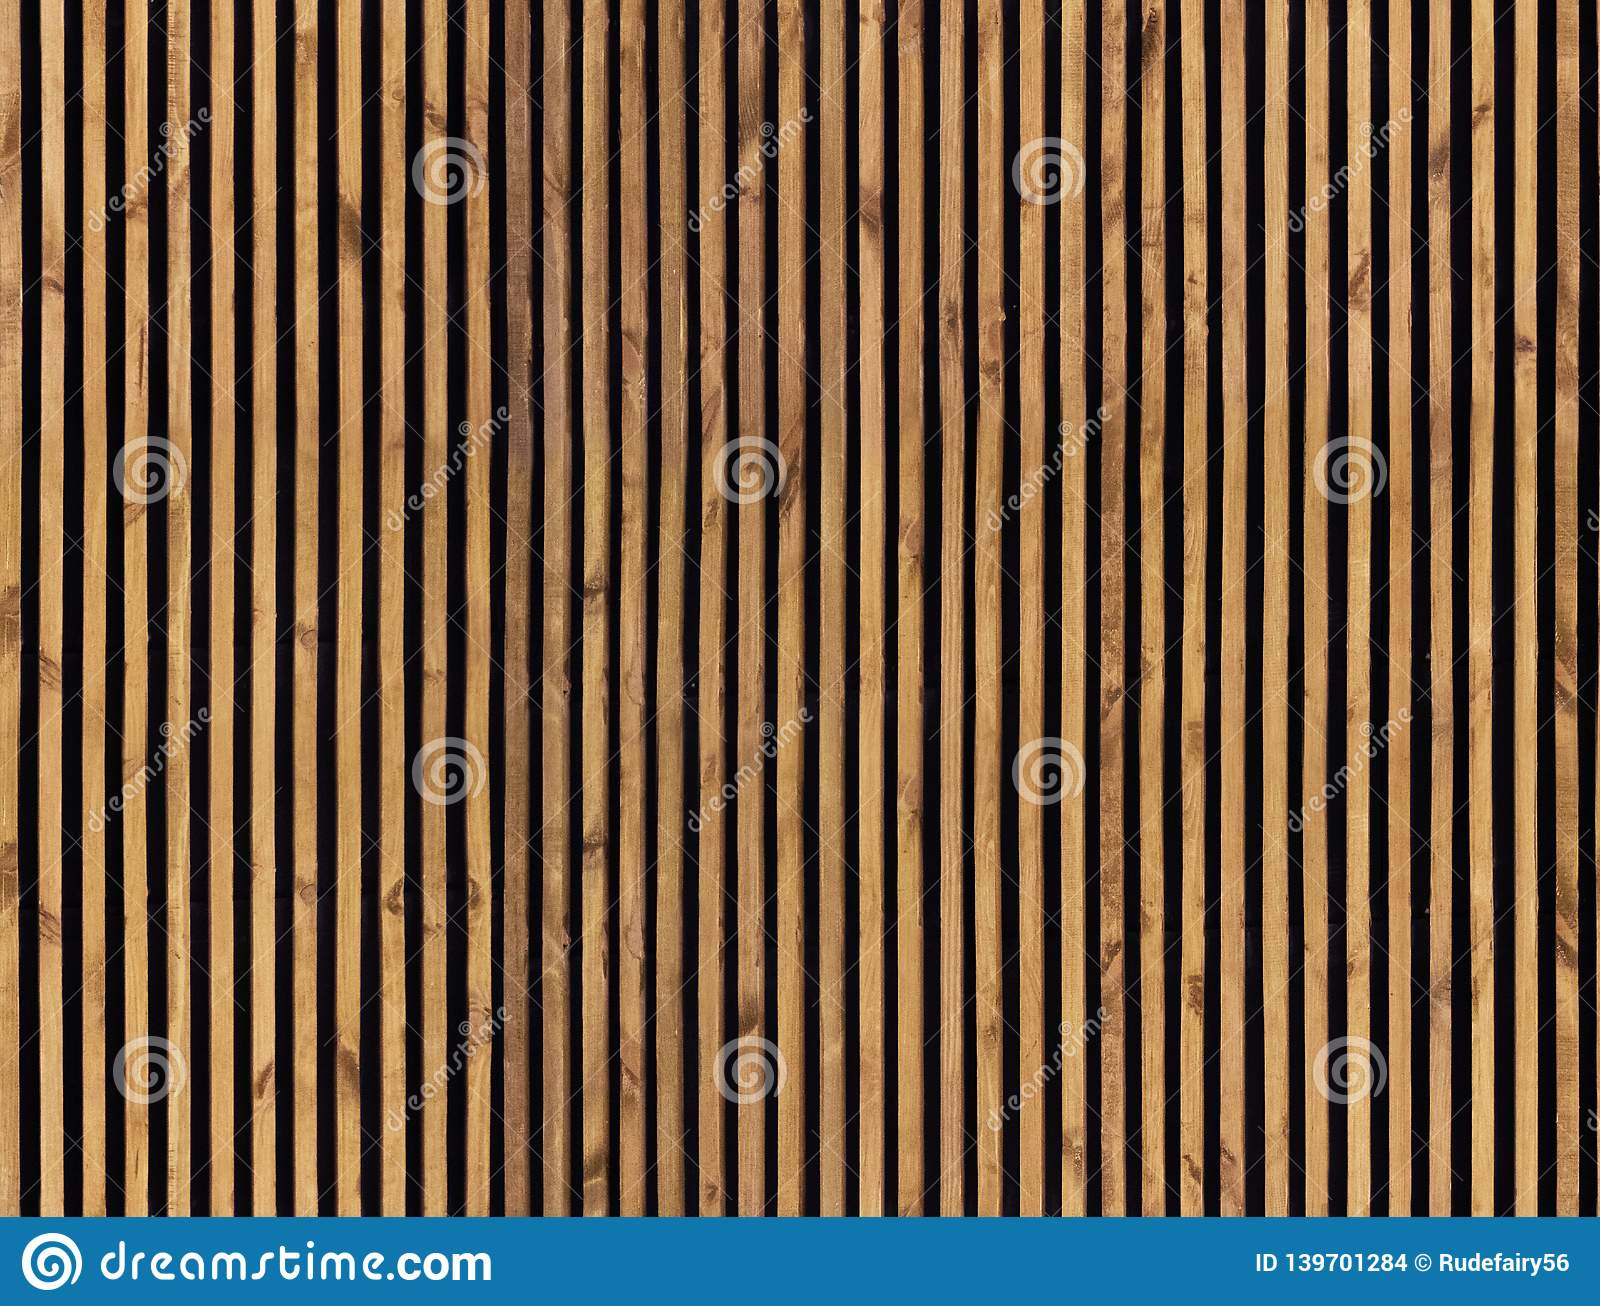 Vertical Wood Slat Wall Seamless Pattern Of Wooden Slats Stock Photo Image Of Board